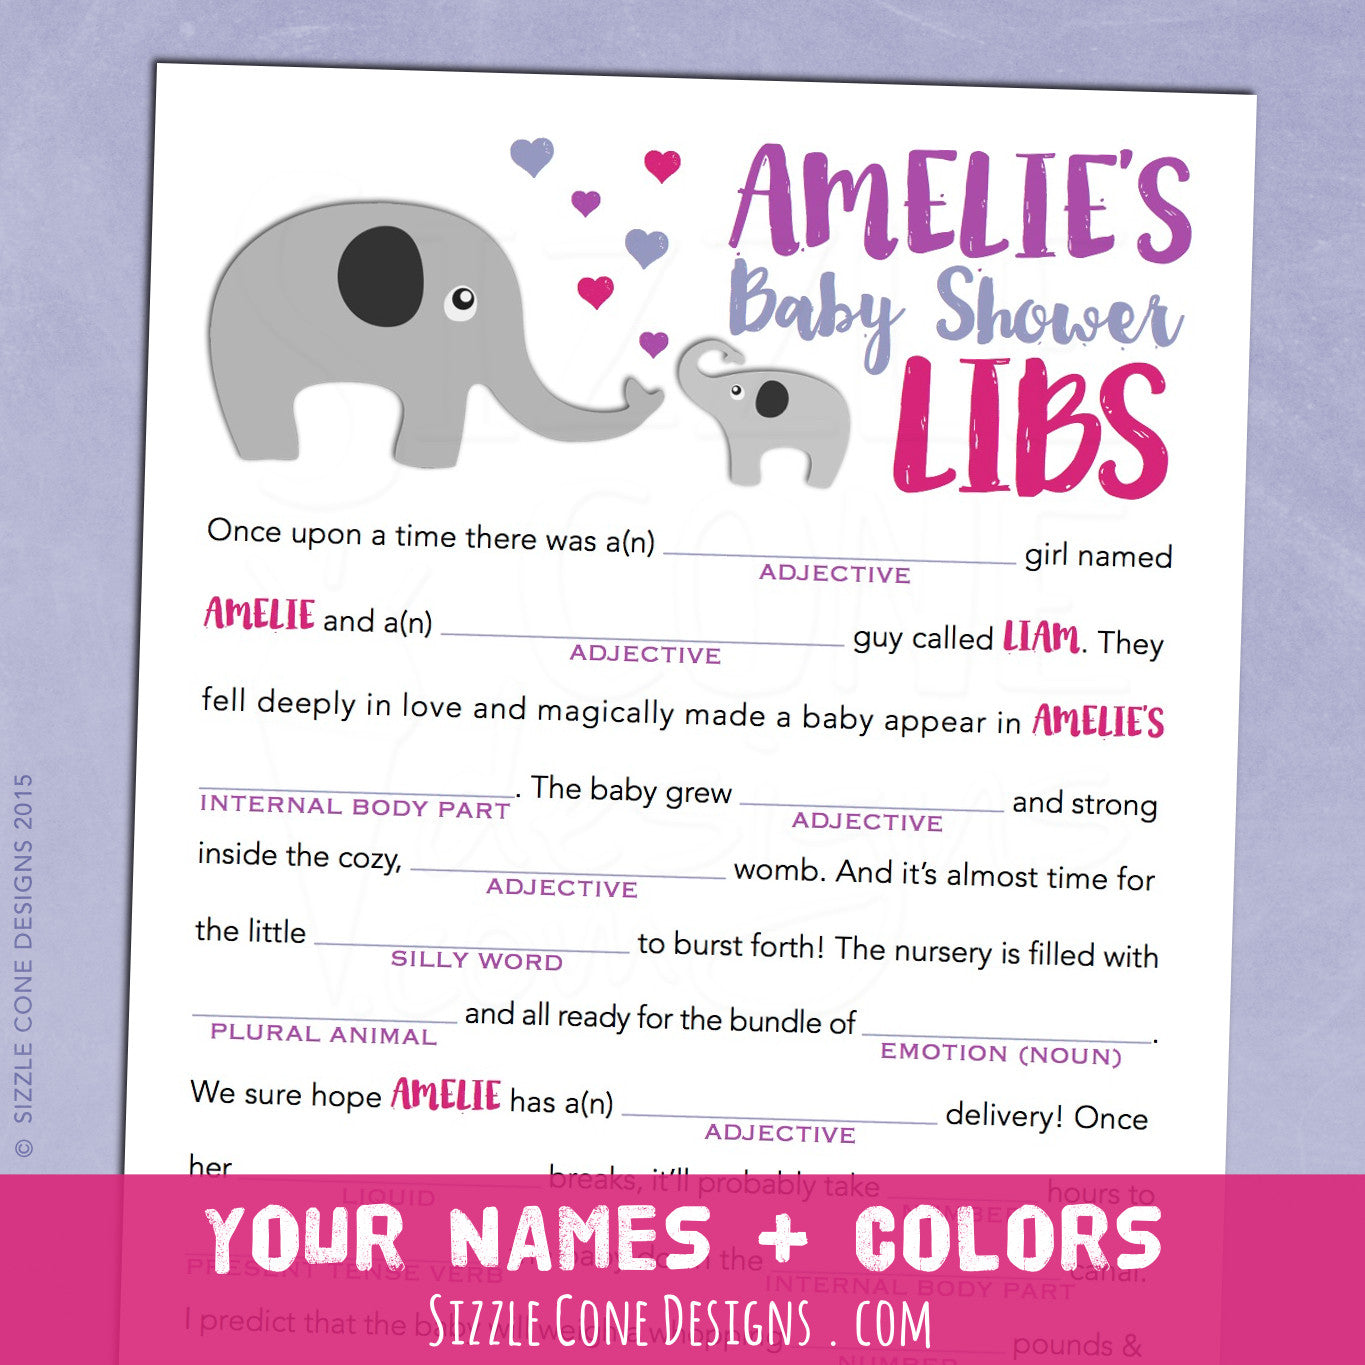 photo about Baby Shower Mad Libs Printable Free identified as Elephants Kid Shower Nuts Lib Activity - Custom-made Printable